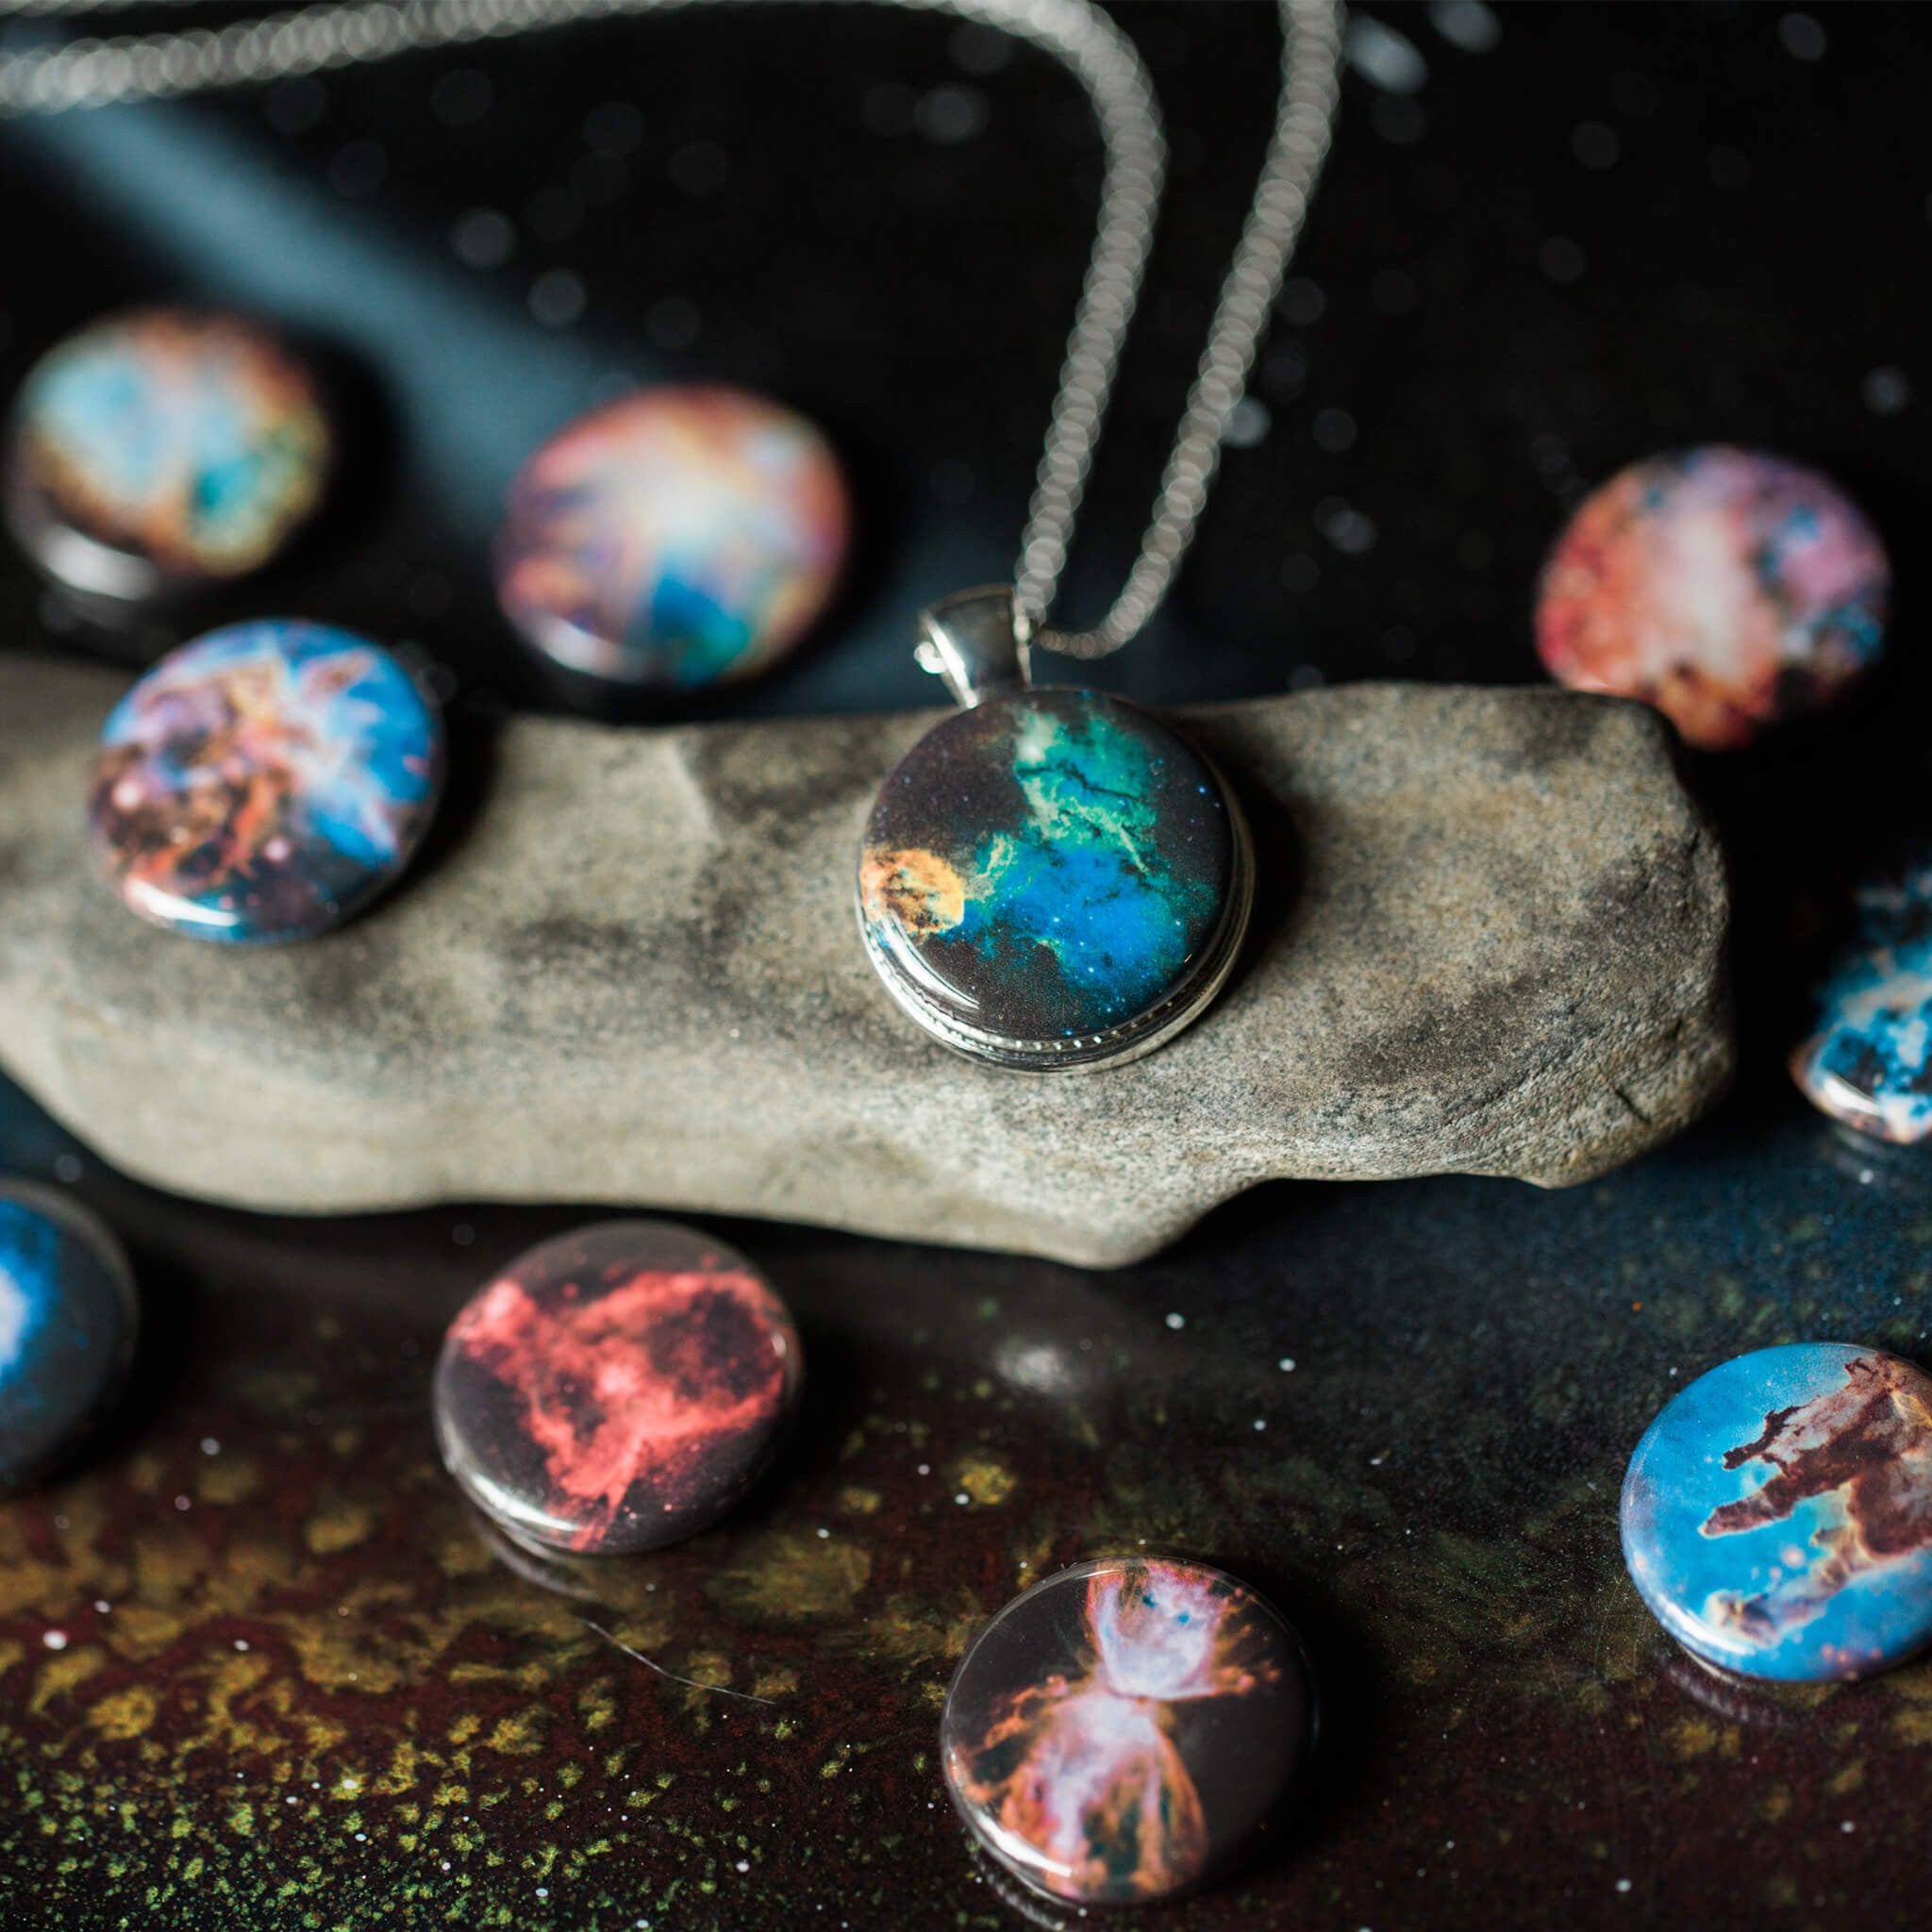 Interchangeable necklace with nebula magnets - 10 Designs in 1 pendant - Handmade STEM Astronomy Galaxy Jewelry by Yugen Tribe